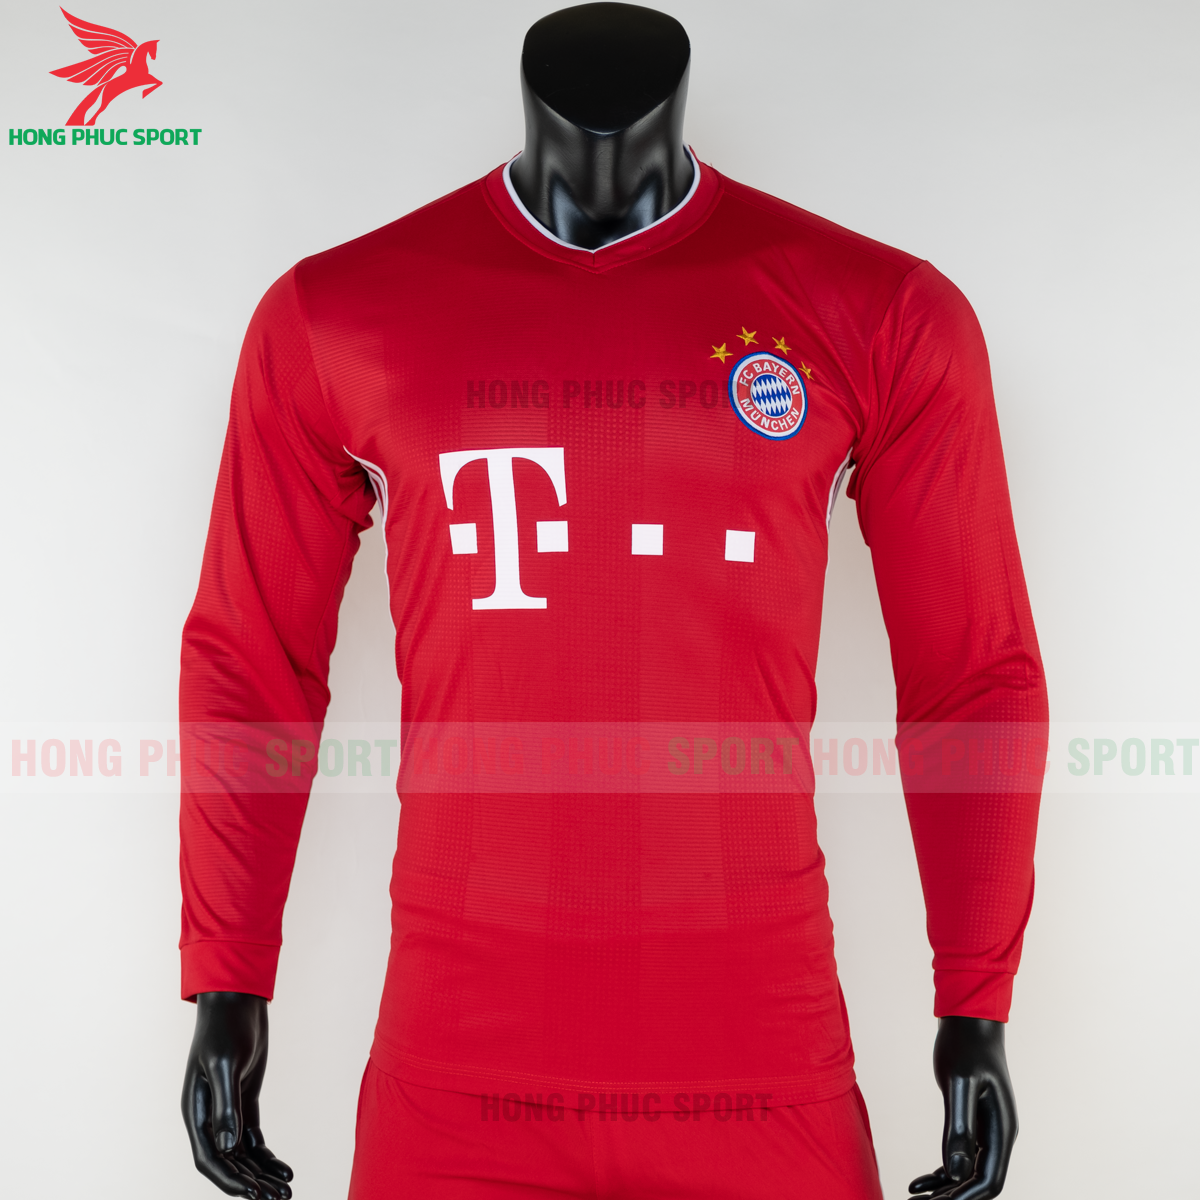 https://cdn.hongphucsport.com/unsafe/s4.shopbay.vn/files/285/ao-dai-tay-bayern-munich-2020-san-nha-1-5f8fb9f7d44d8.png